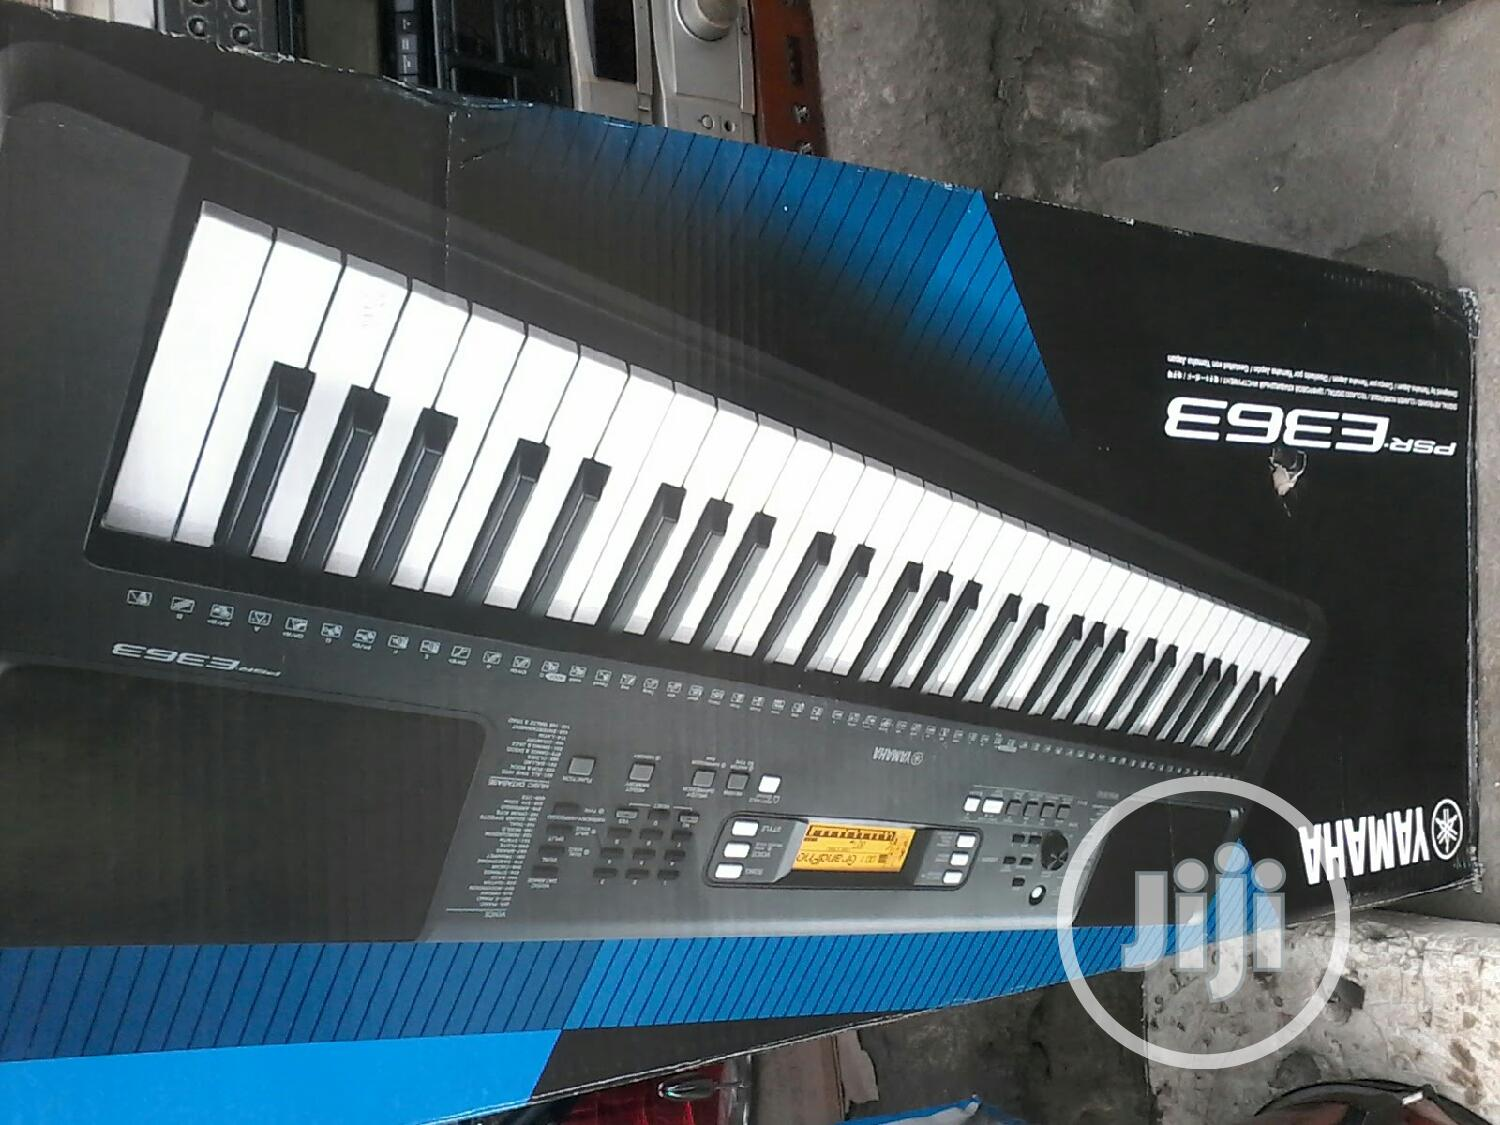 Psre363 Yamaha Piano Keyboard | Musical Instruments & Gear for sale in Ilupeju, Lagos State, Nigeria